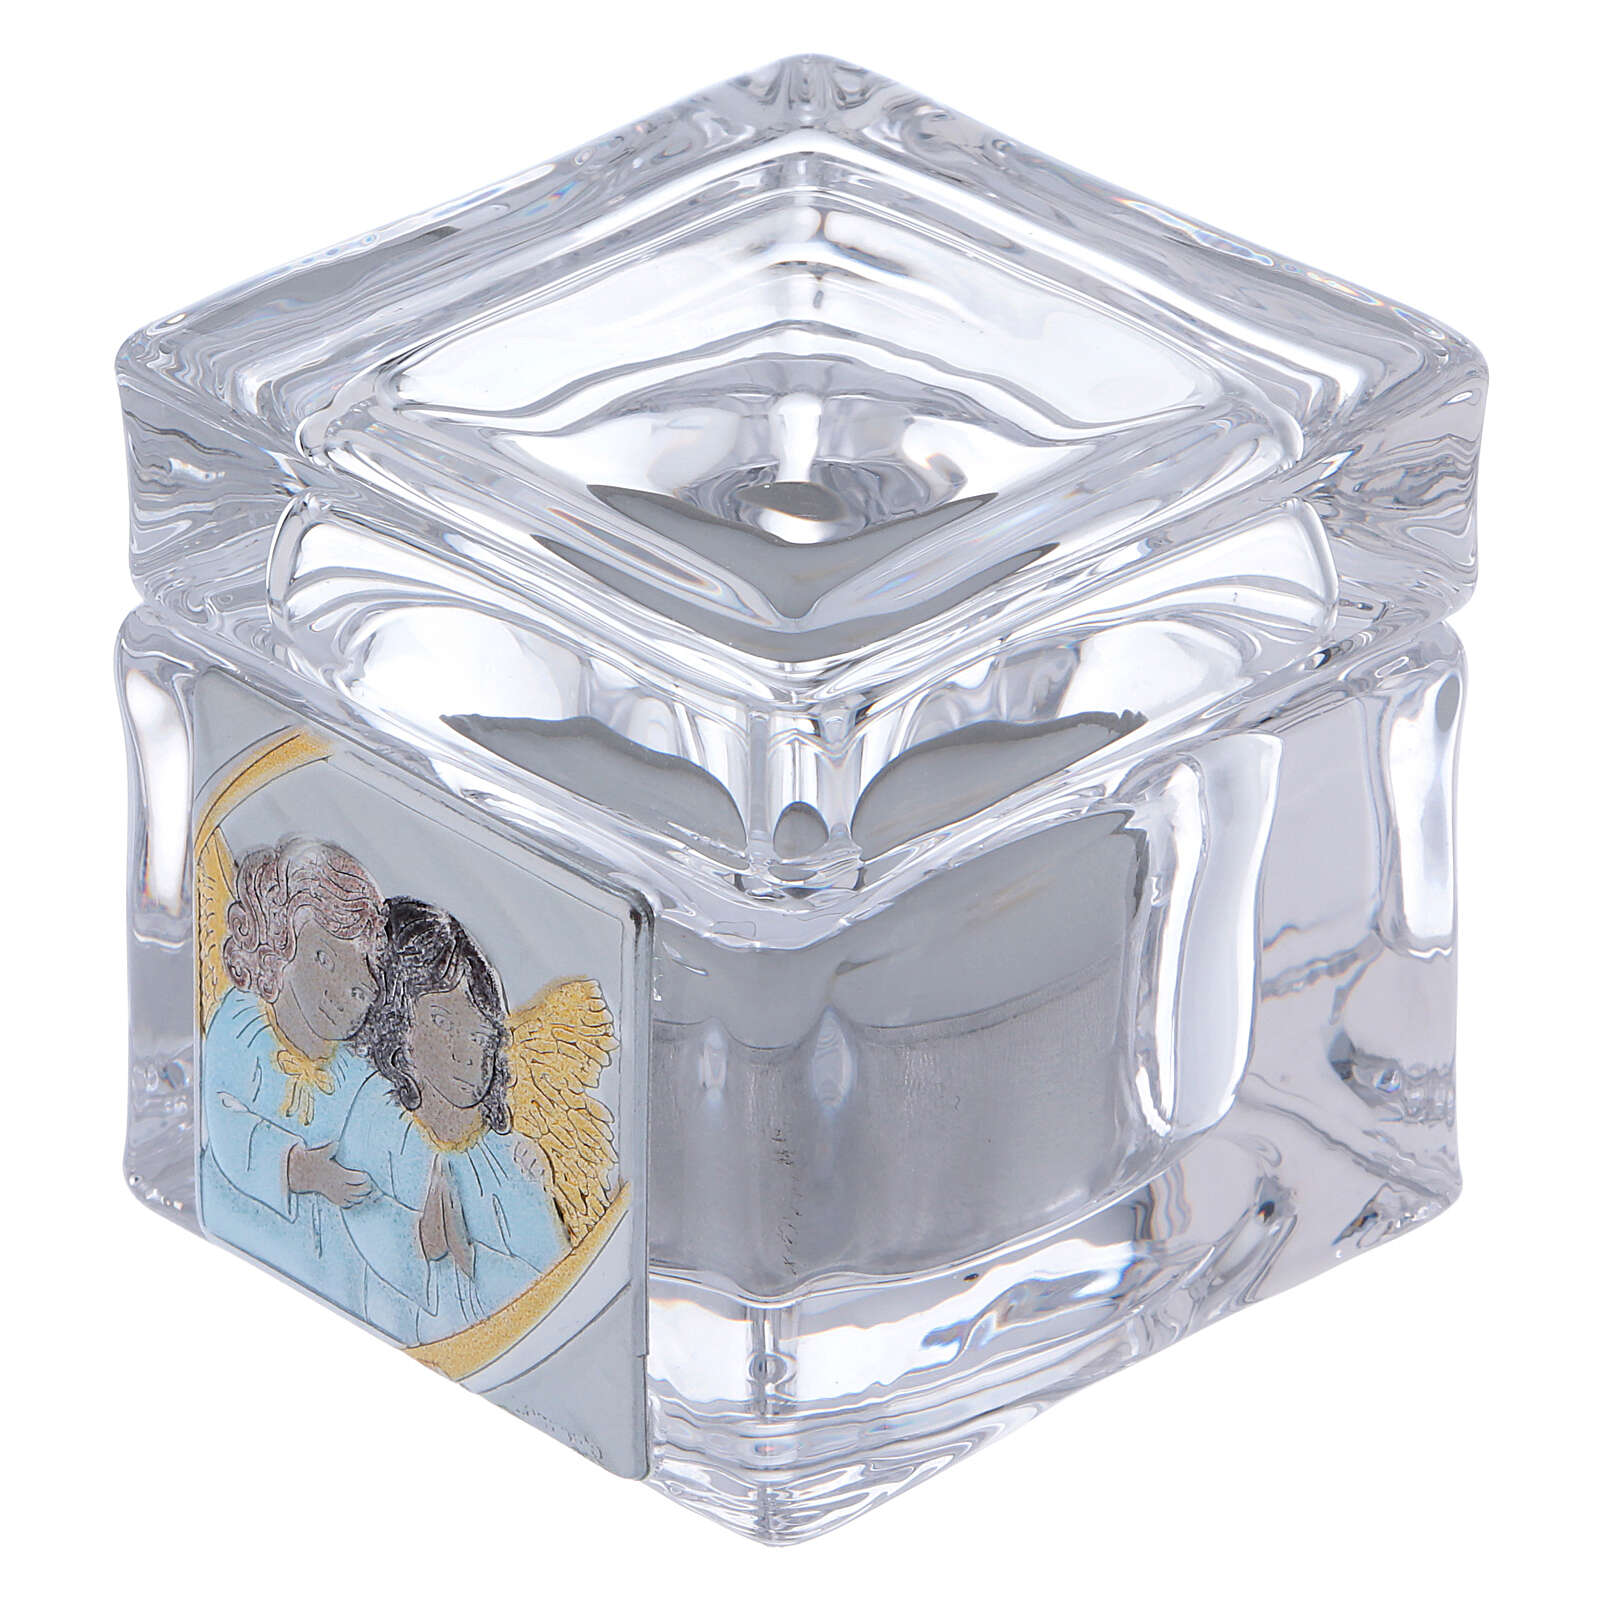 Christening souvenir box with tea light candle 2x2x2 in 4